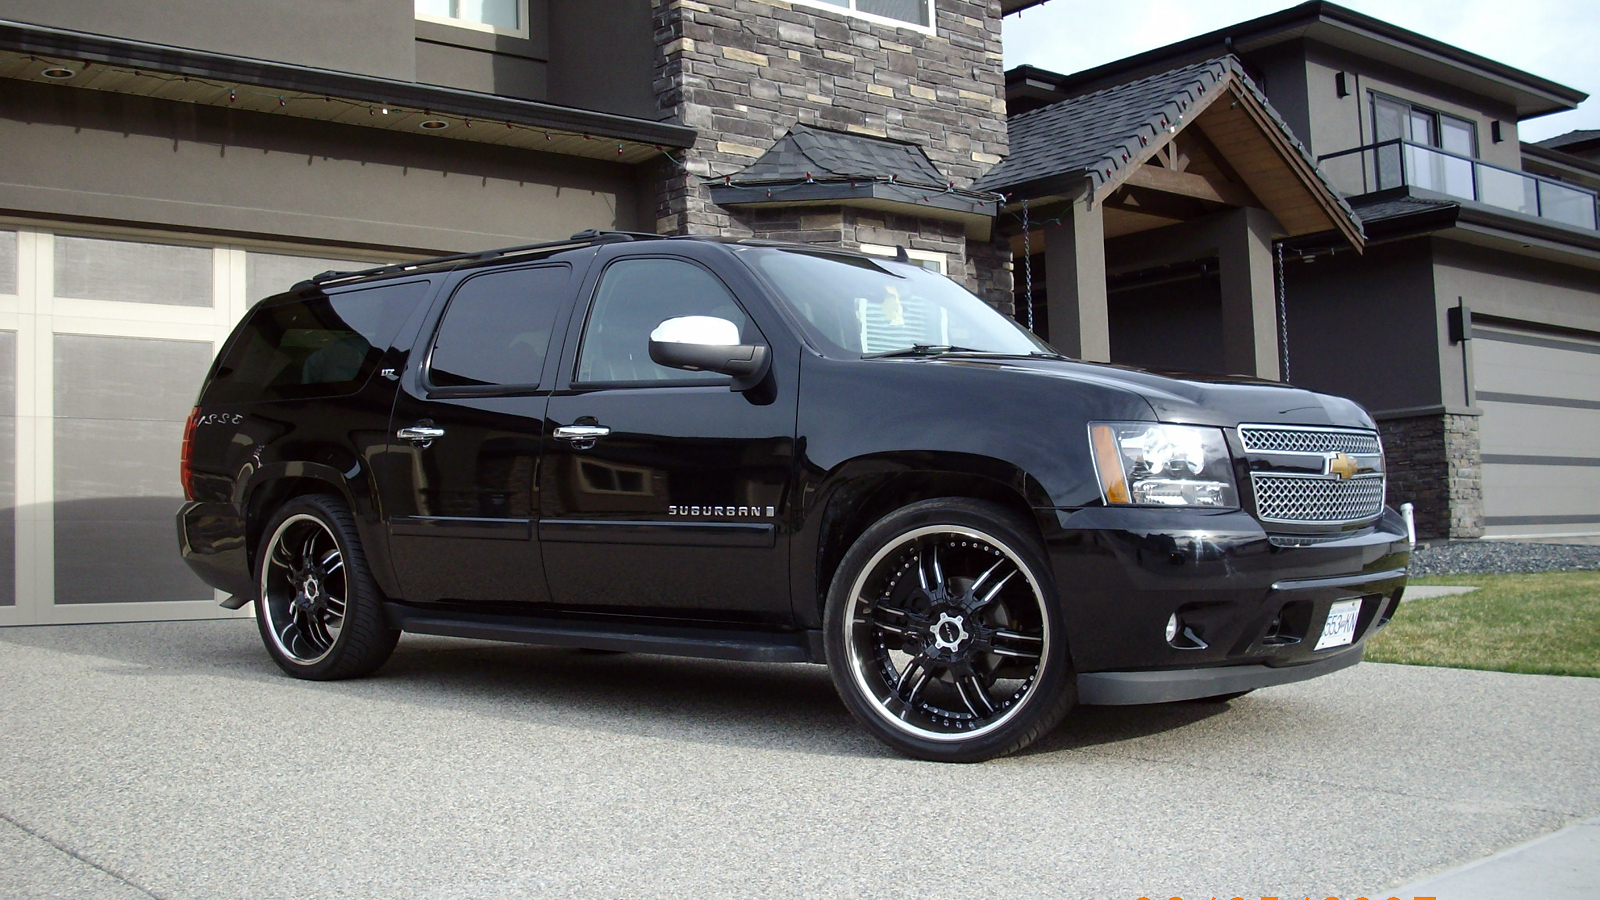 Pictures of chevrolet suburban #9